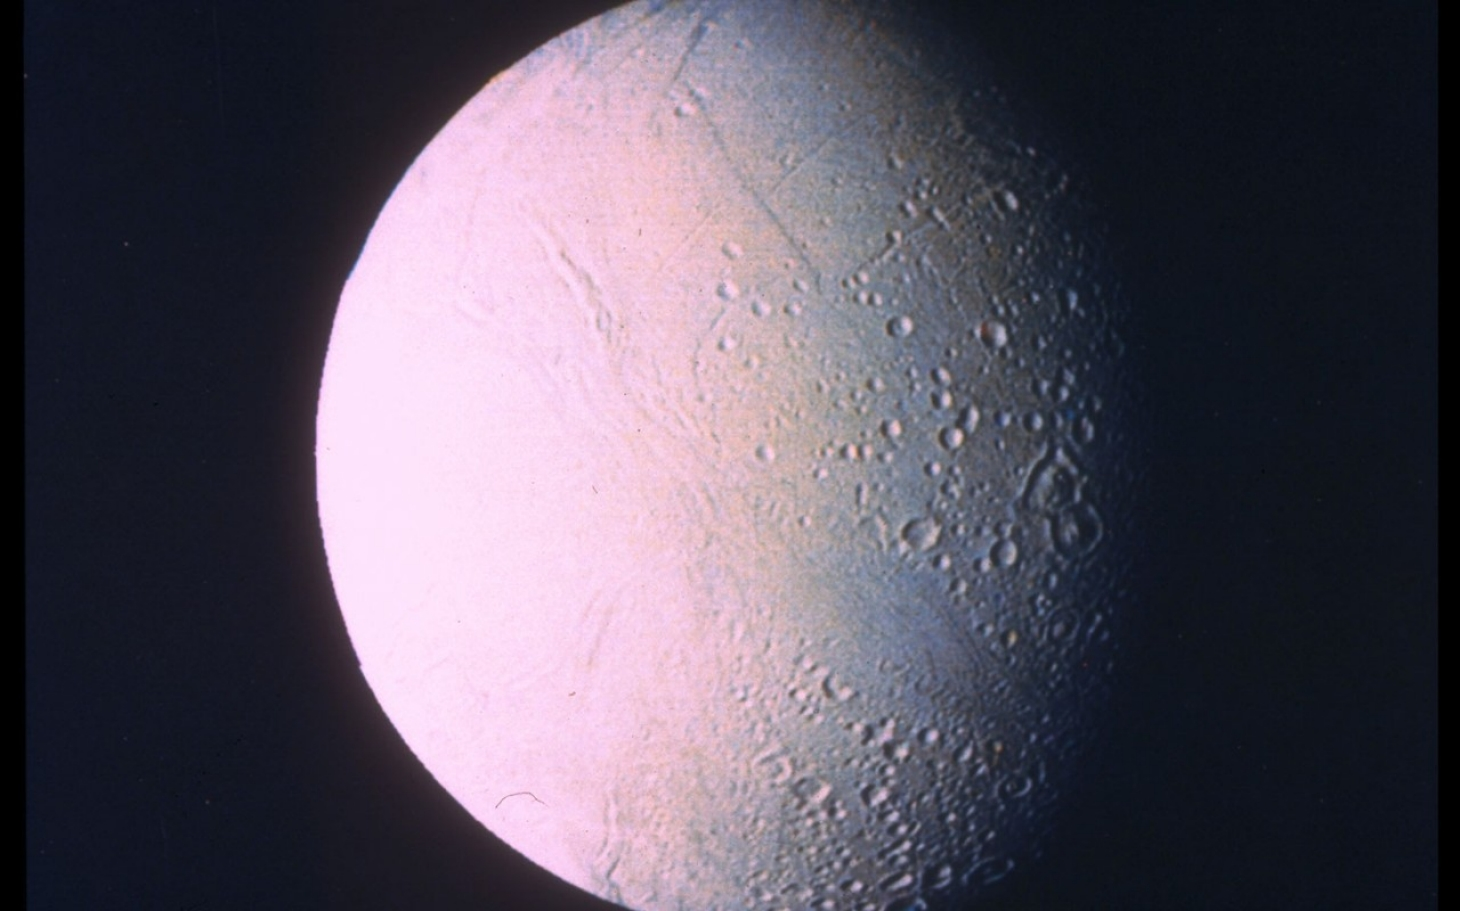 Small Saturn moon has underground ocean, study shows | Al ...